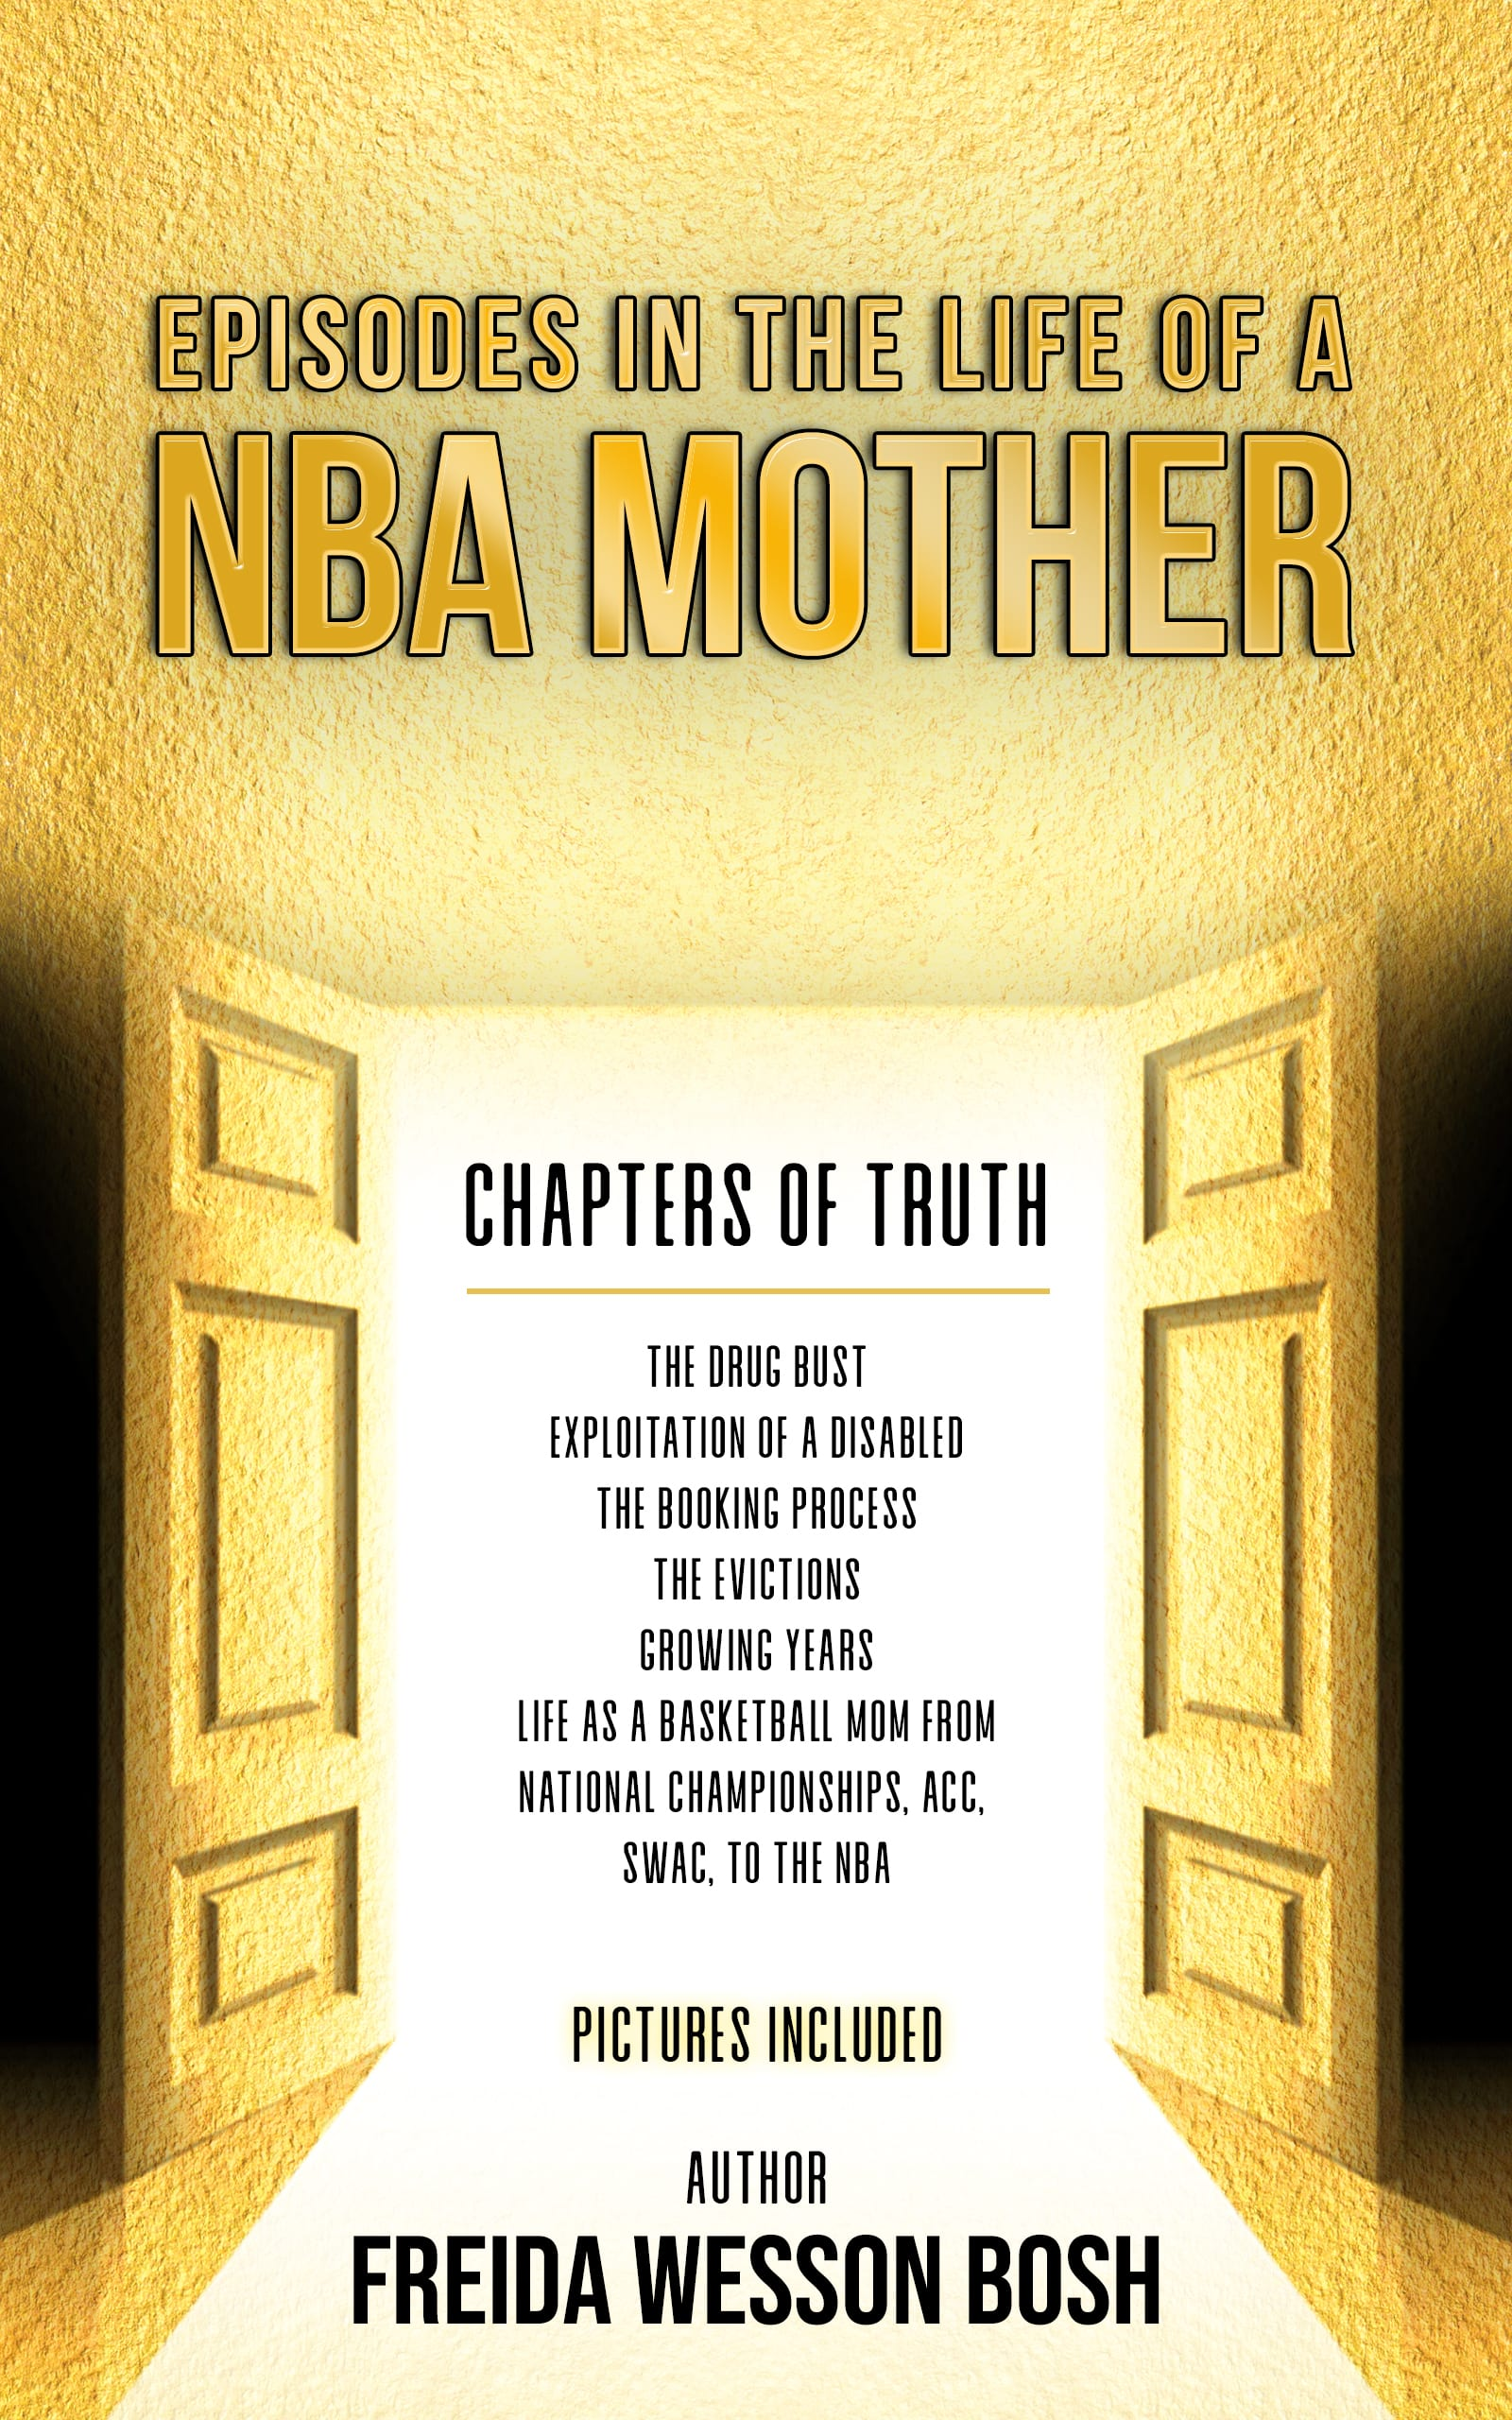 NEW Book Launching: Episodes in the Life of a NBA Mother